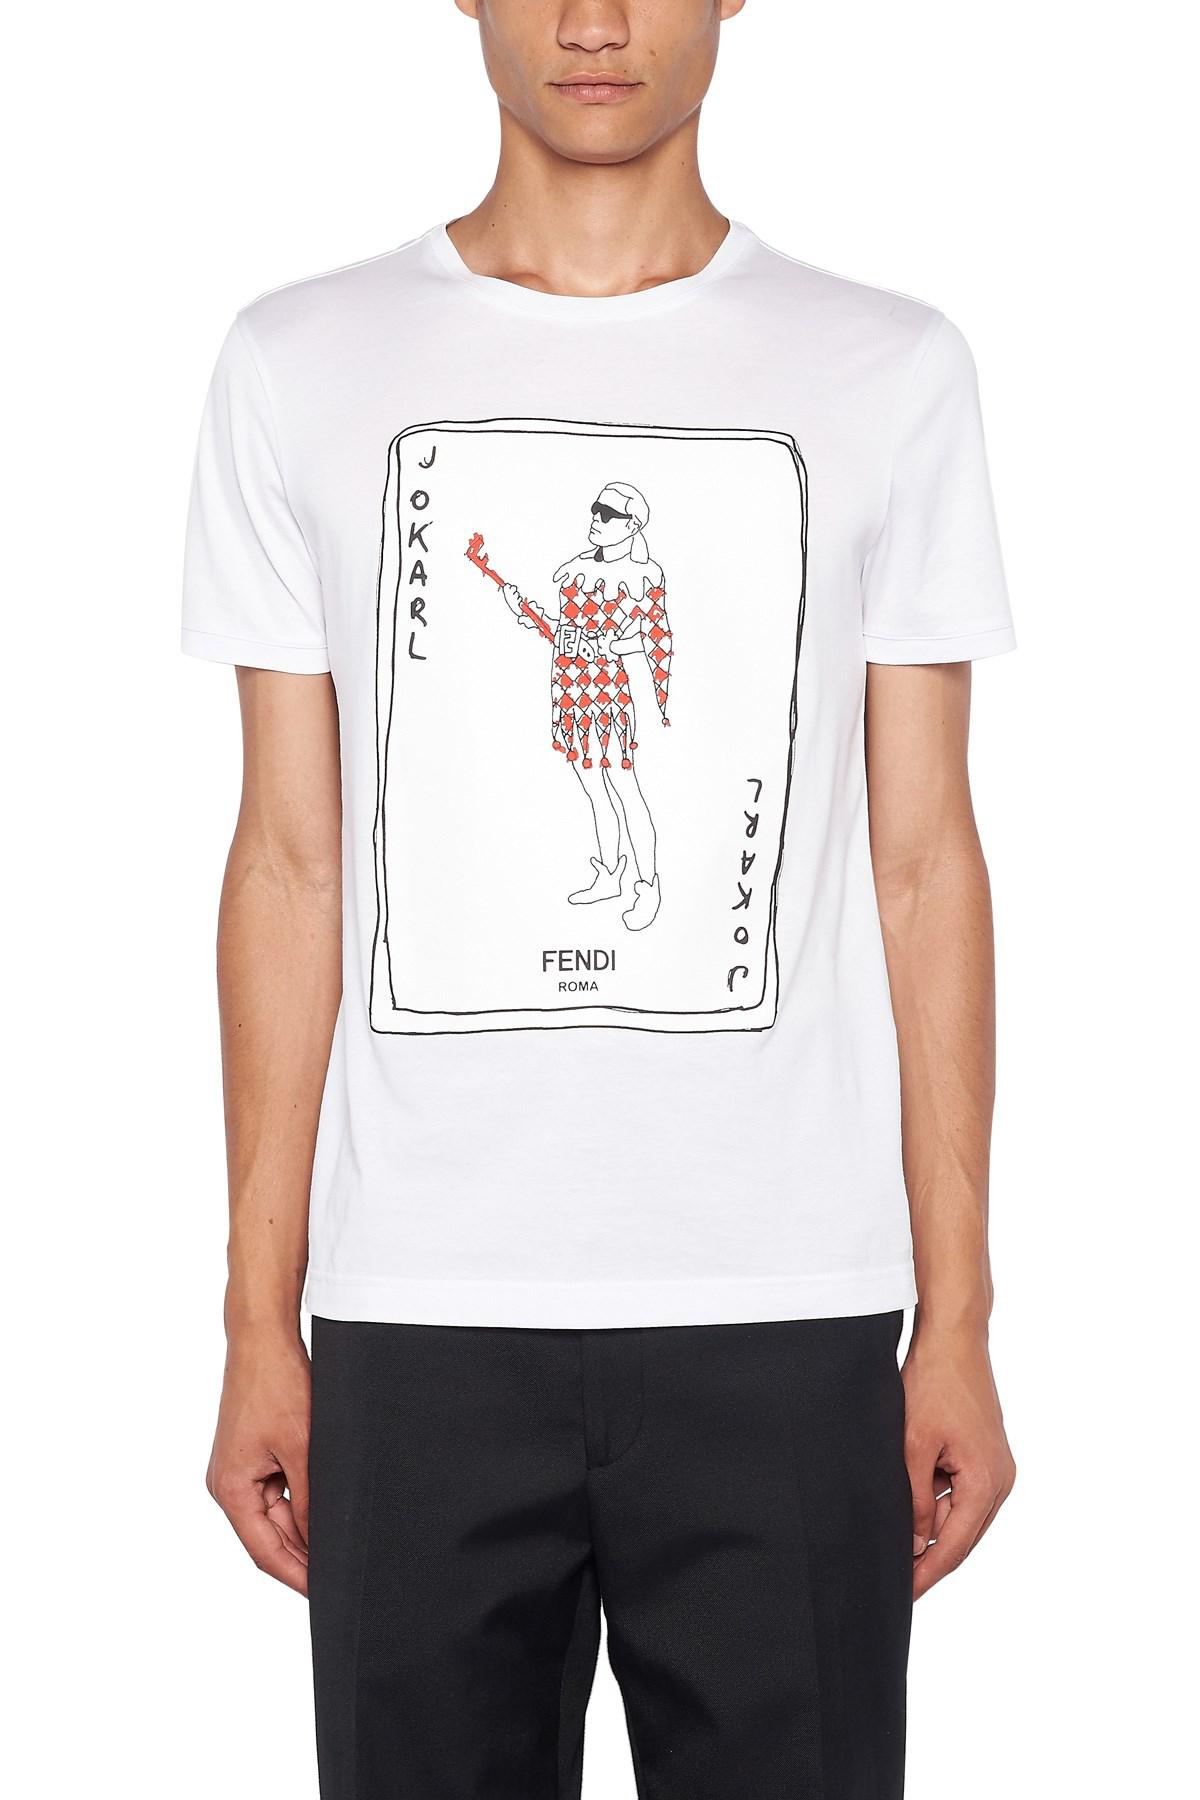 501cfb67 Fendi ' Jokarl' T-shirt in White for Men - Lyst